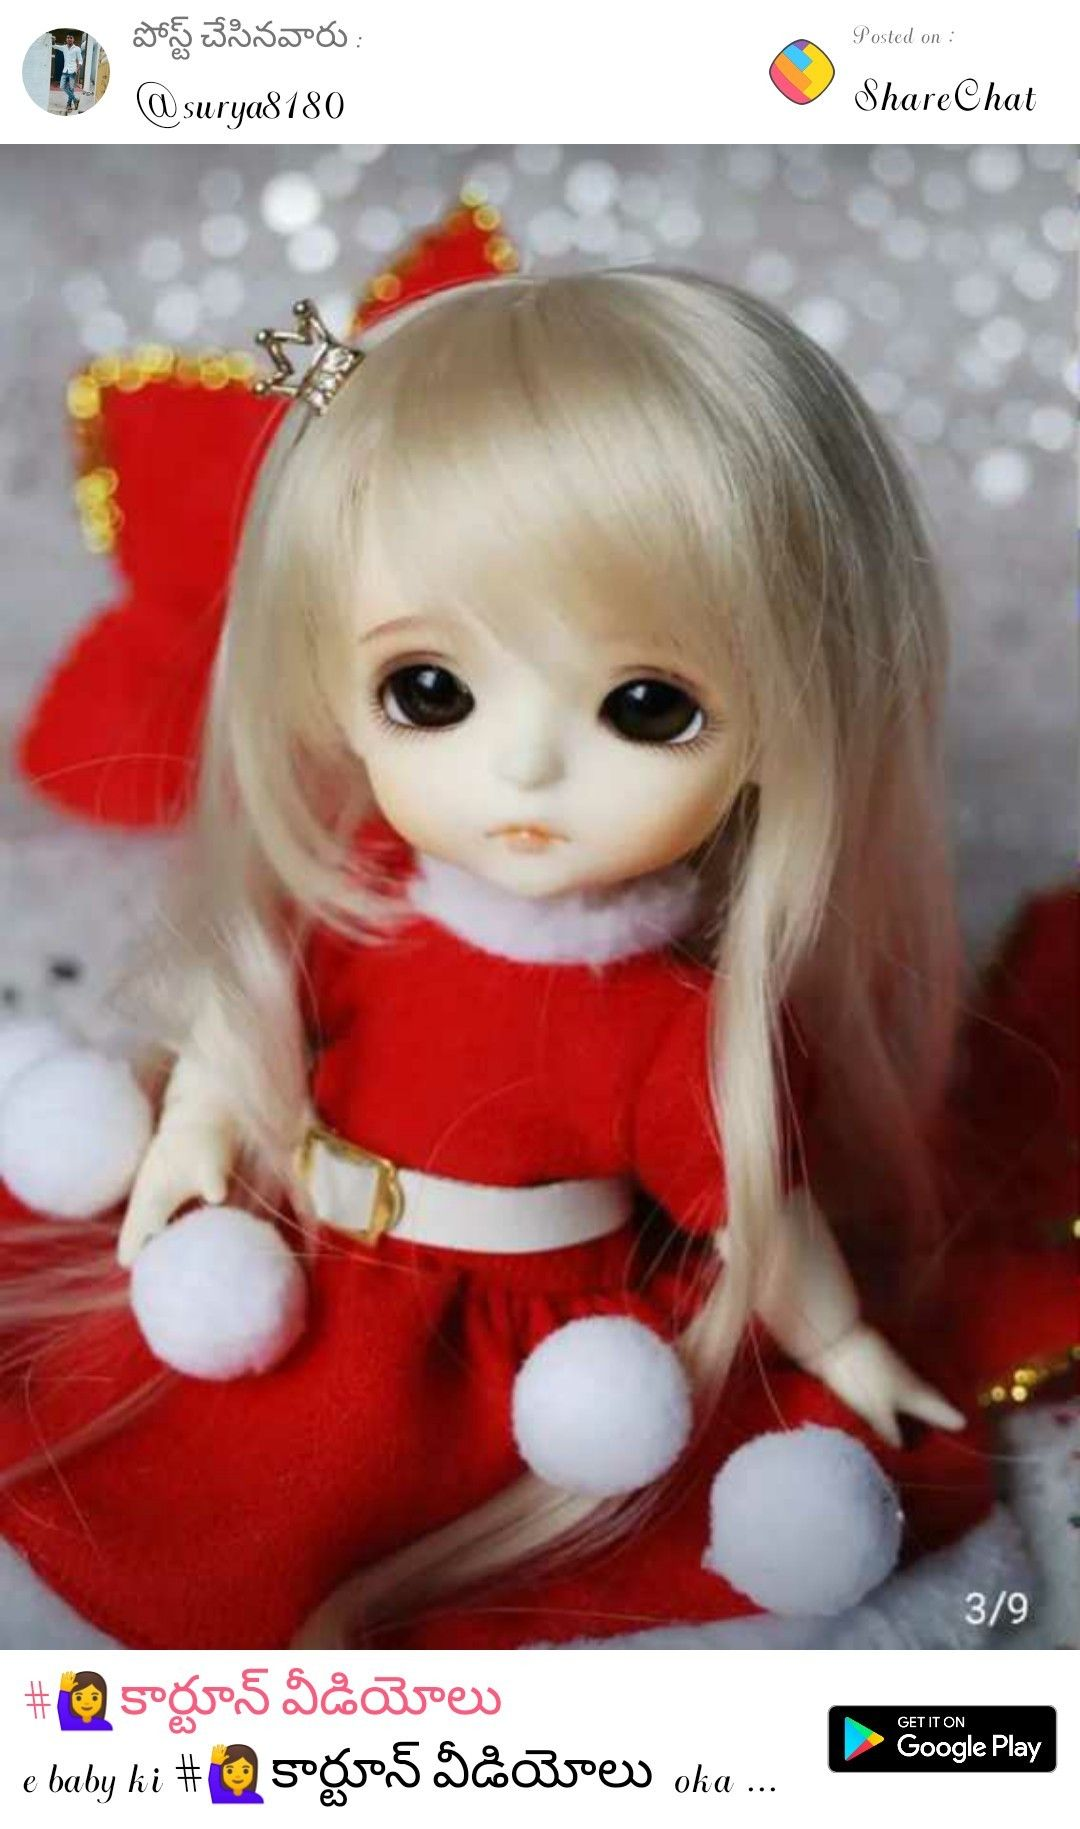 Pin By 8555027959 On Share Chat Cute Baby Dolls Pretty Dolls Cute Girl Hd Wallpaper